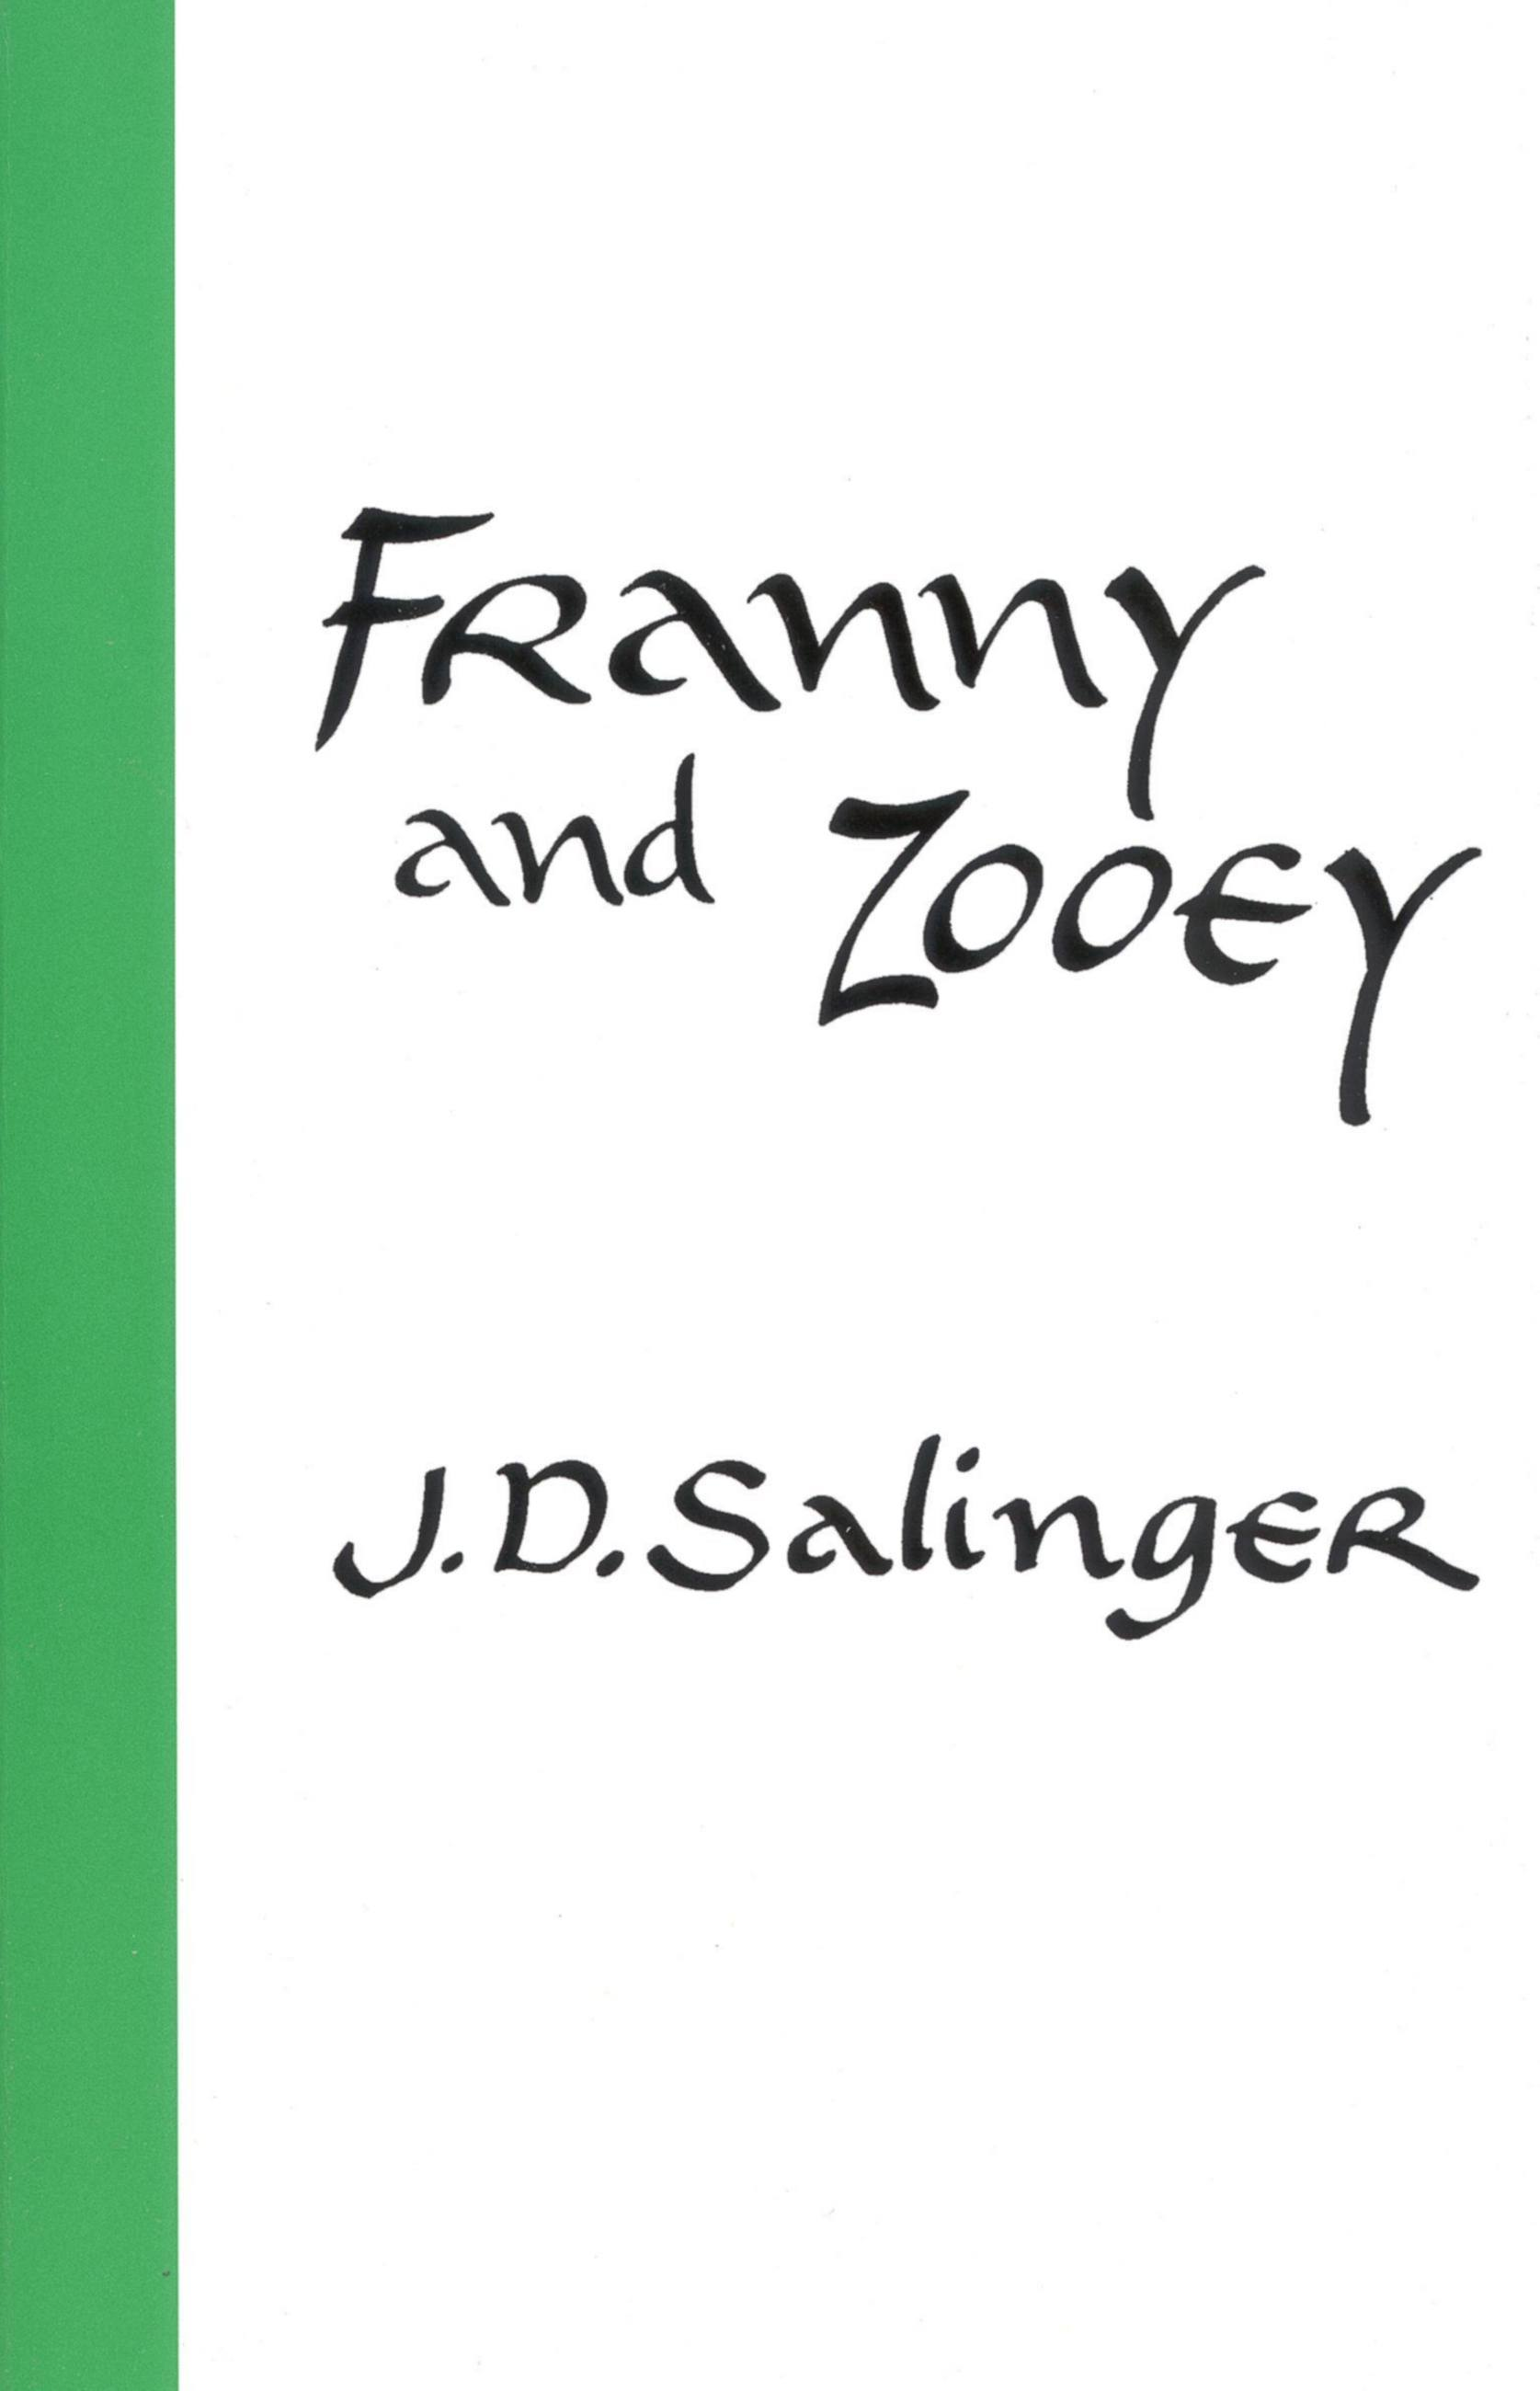 franny and zooey essay questions